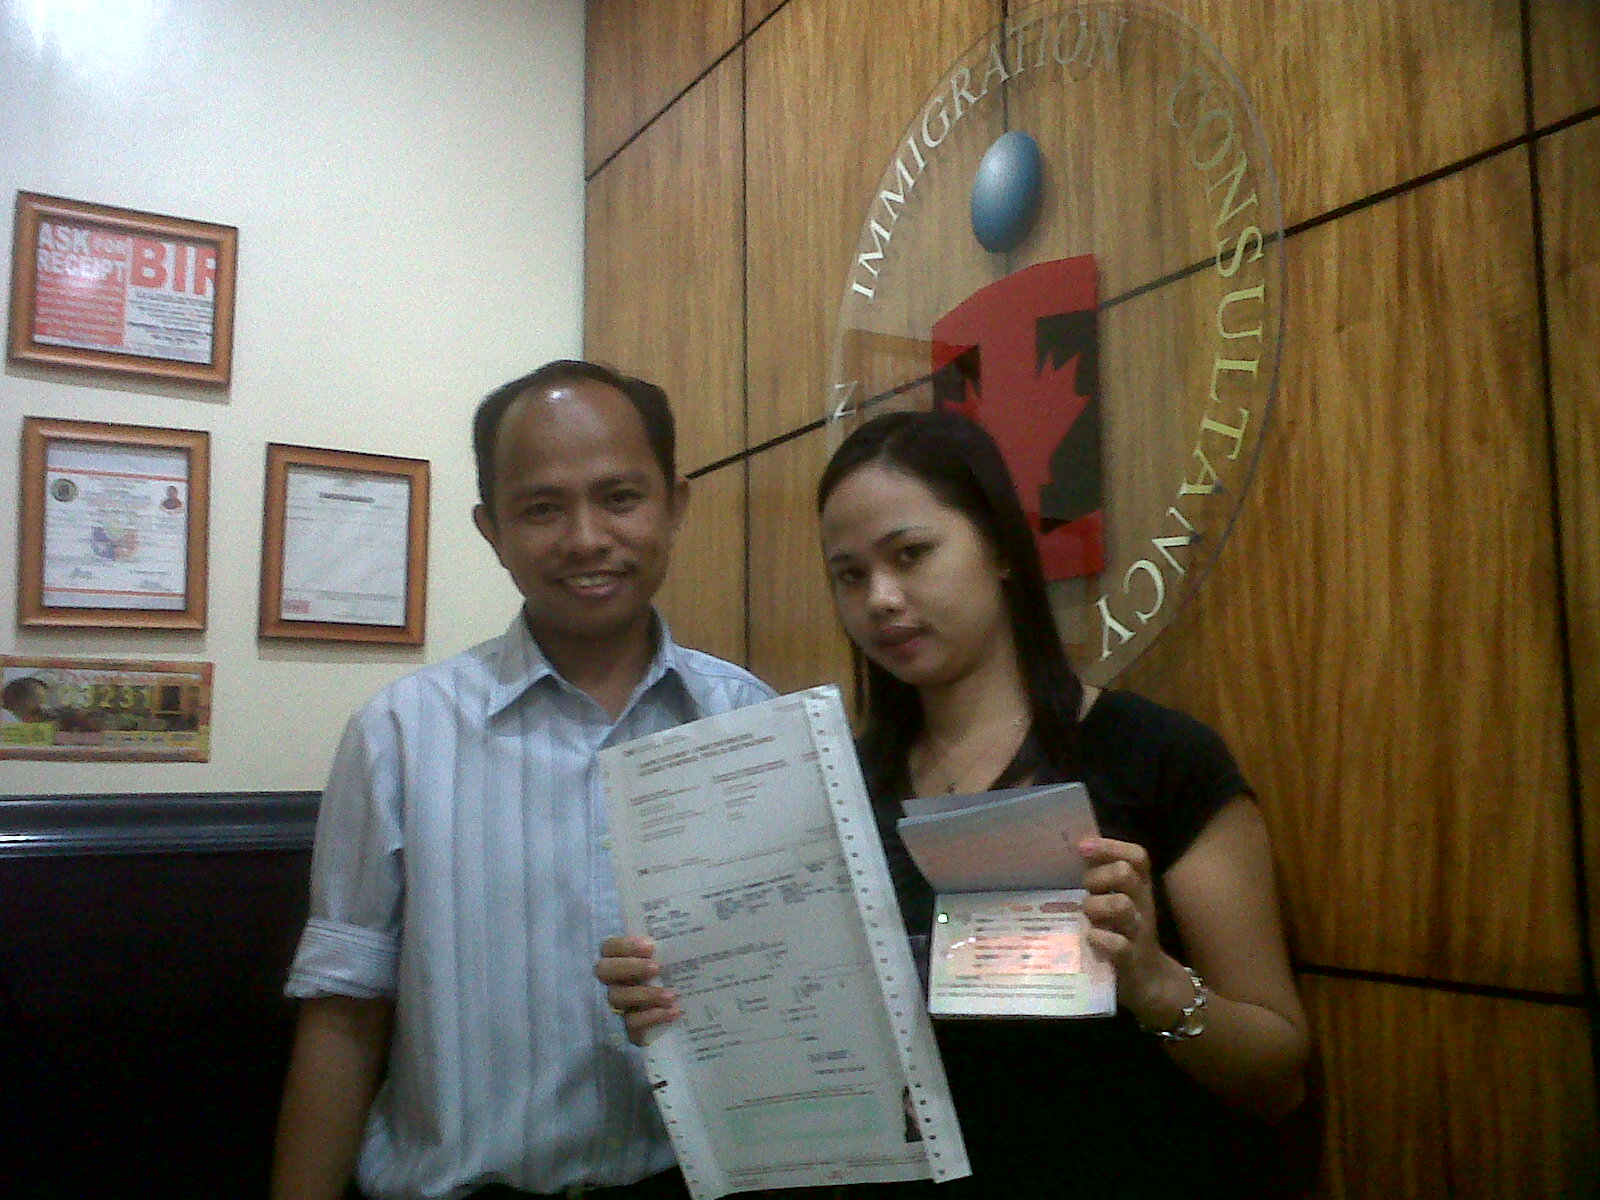 application for approval under the family assistance law